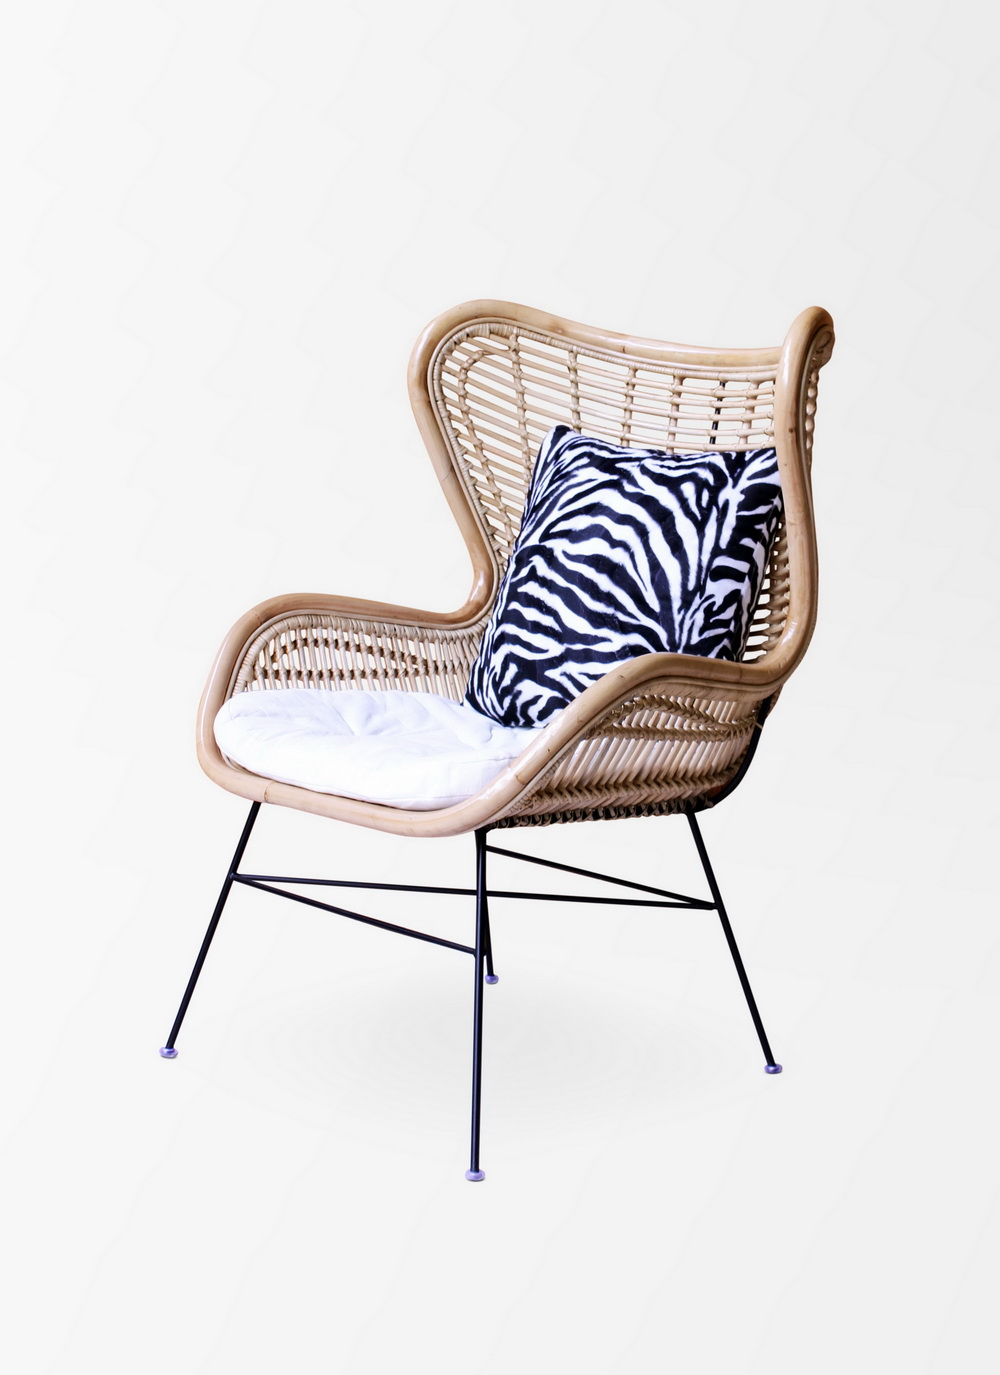 Mix and Match: Wicker Furniture